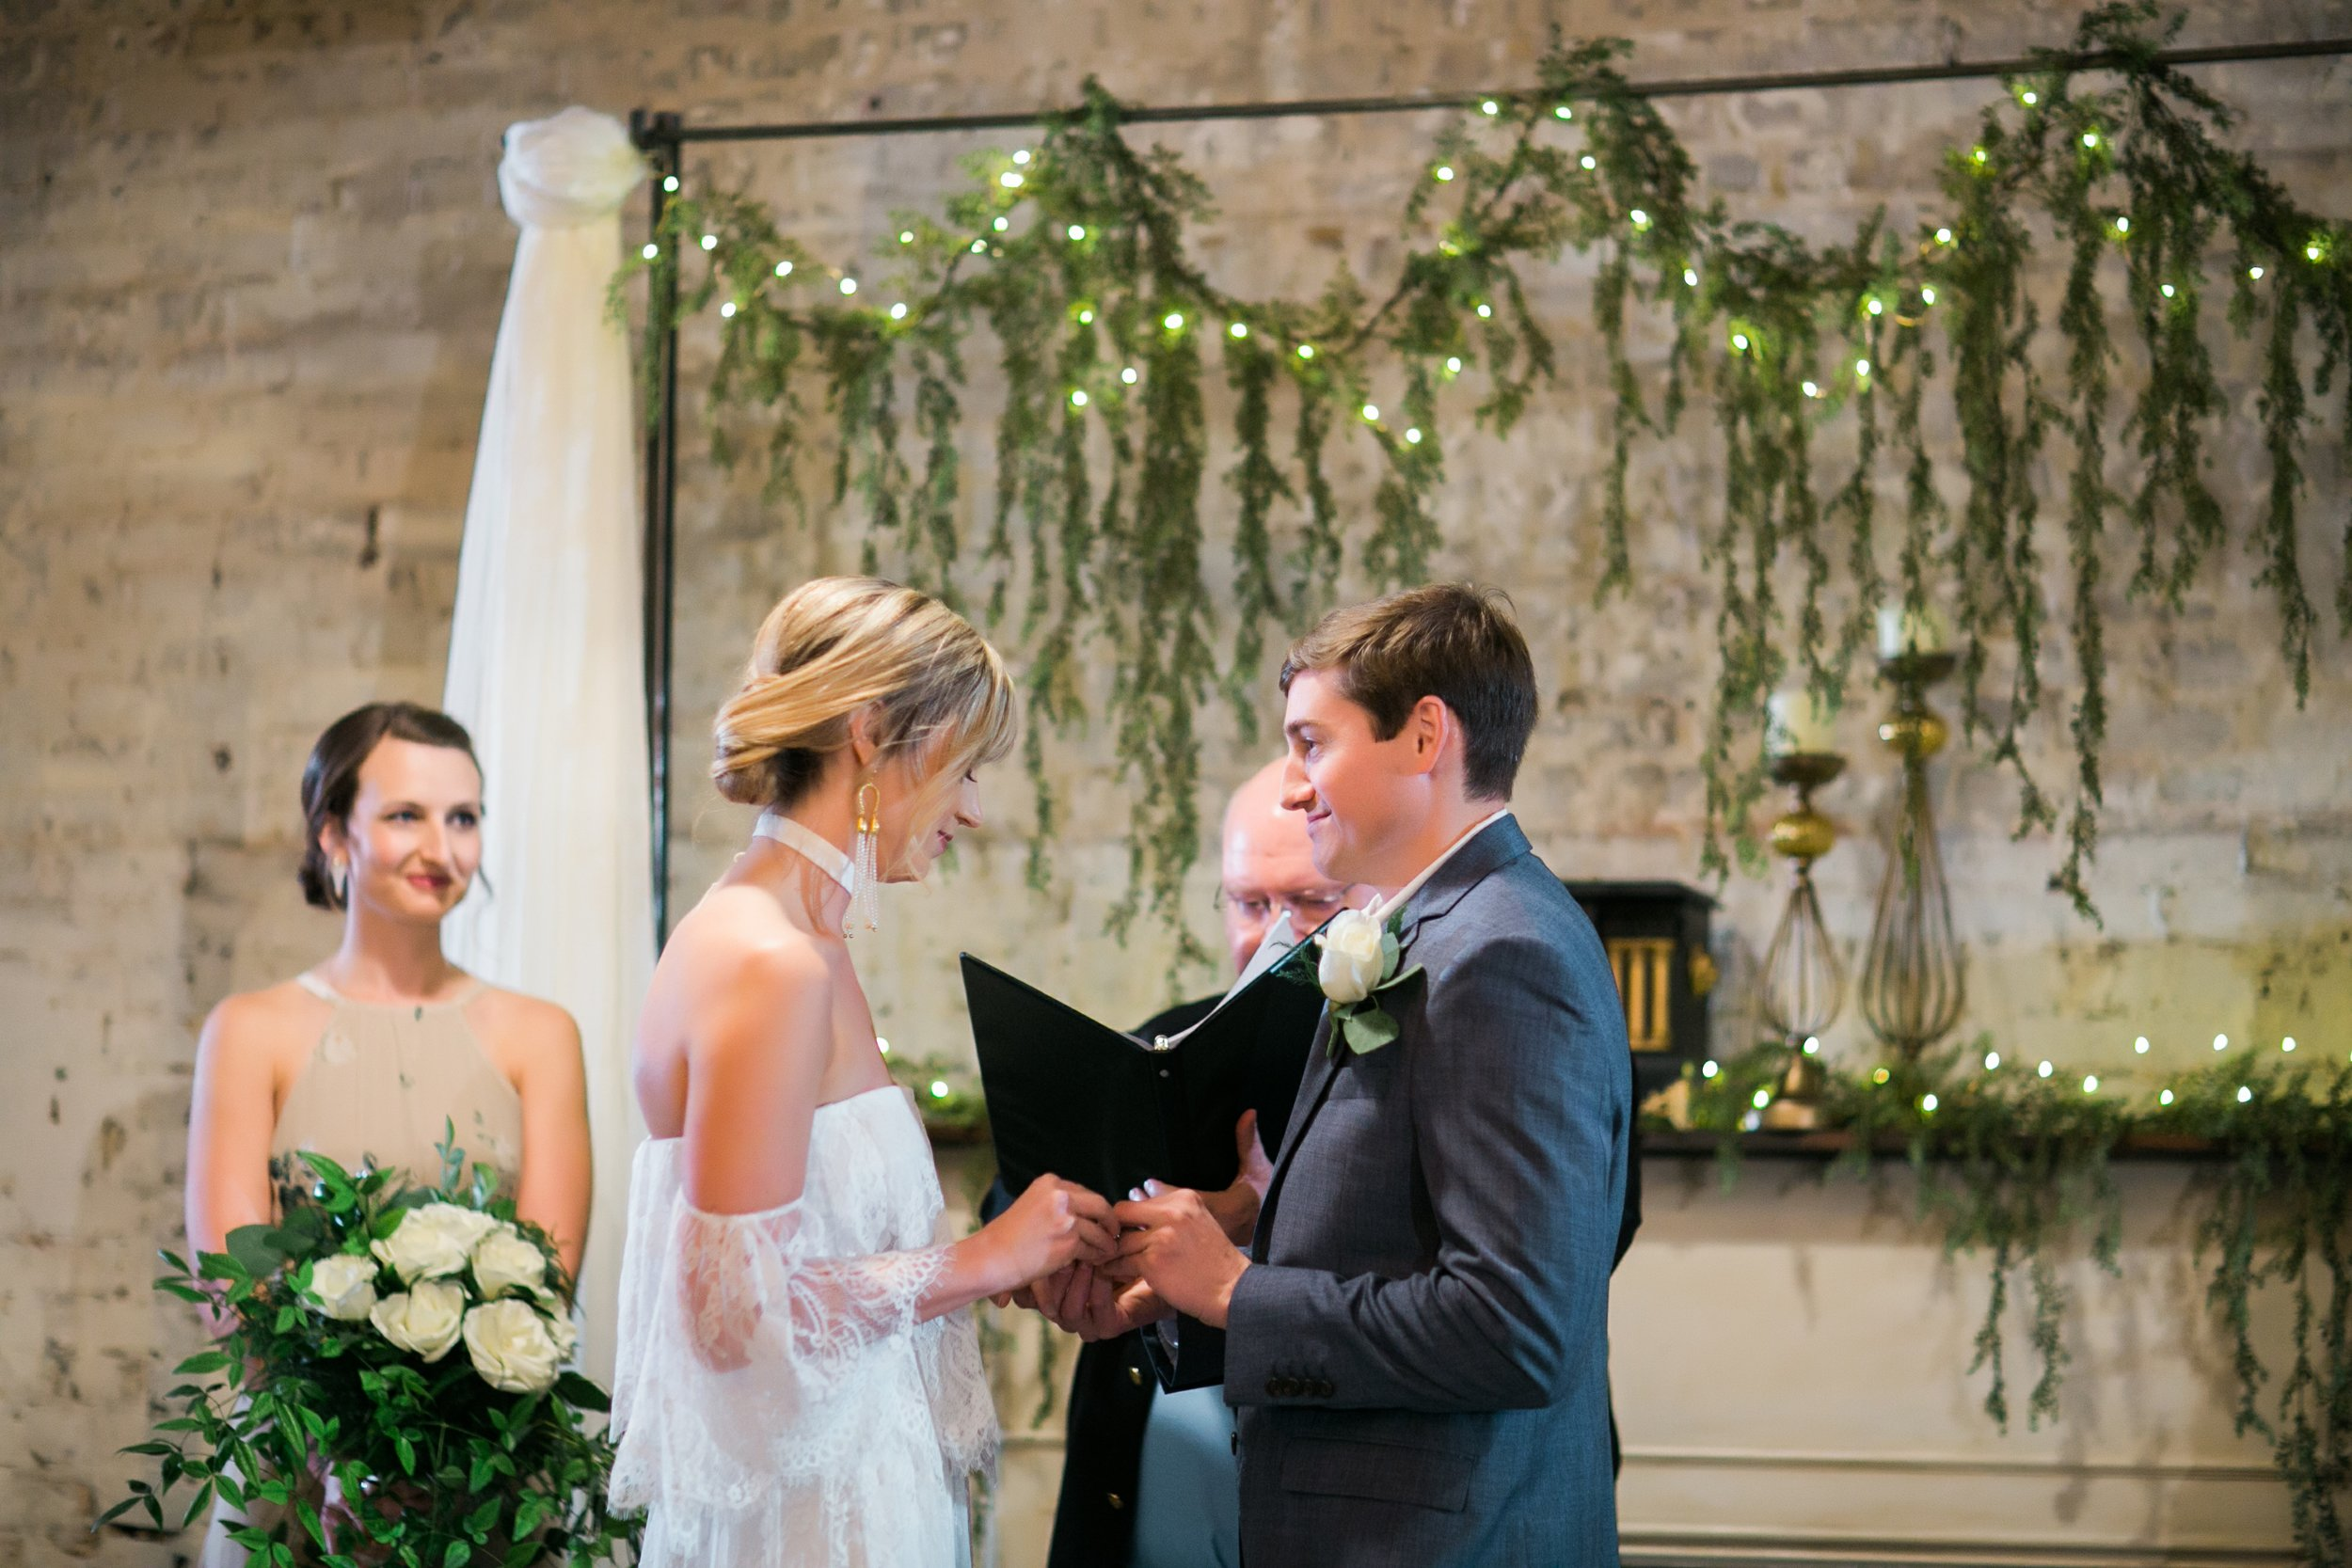 Magan-Landon-Surprise-wedding-at-southern-jeweled-warehouse-wichita-falls-texas-lauren-pinson-058.jpg